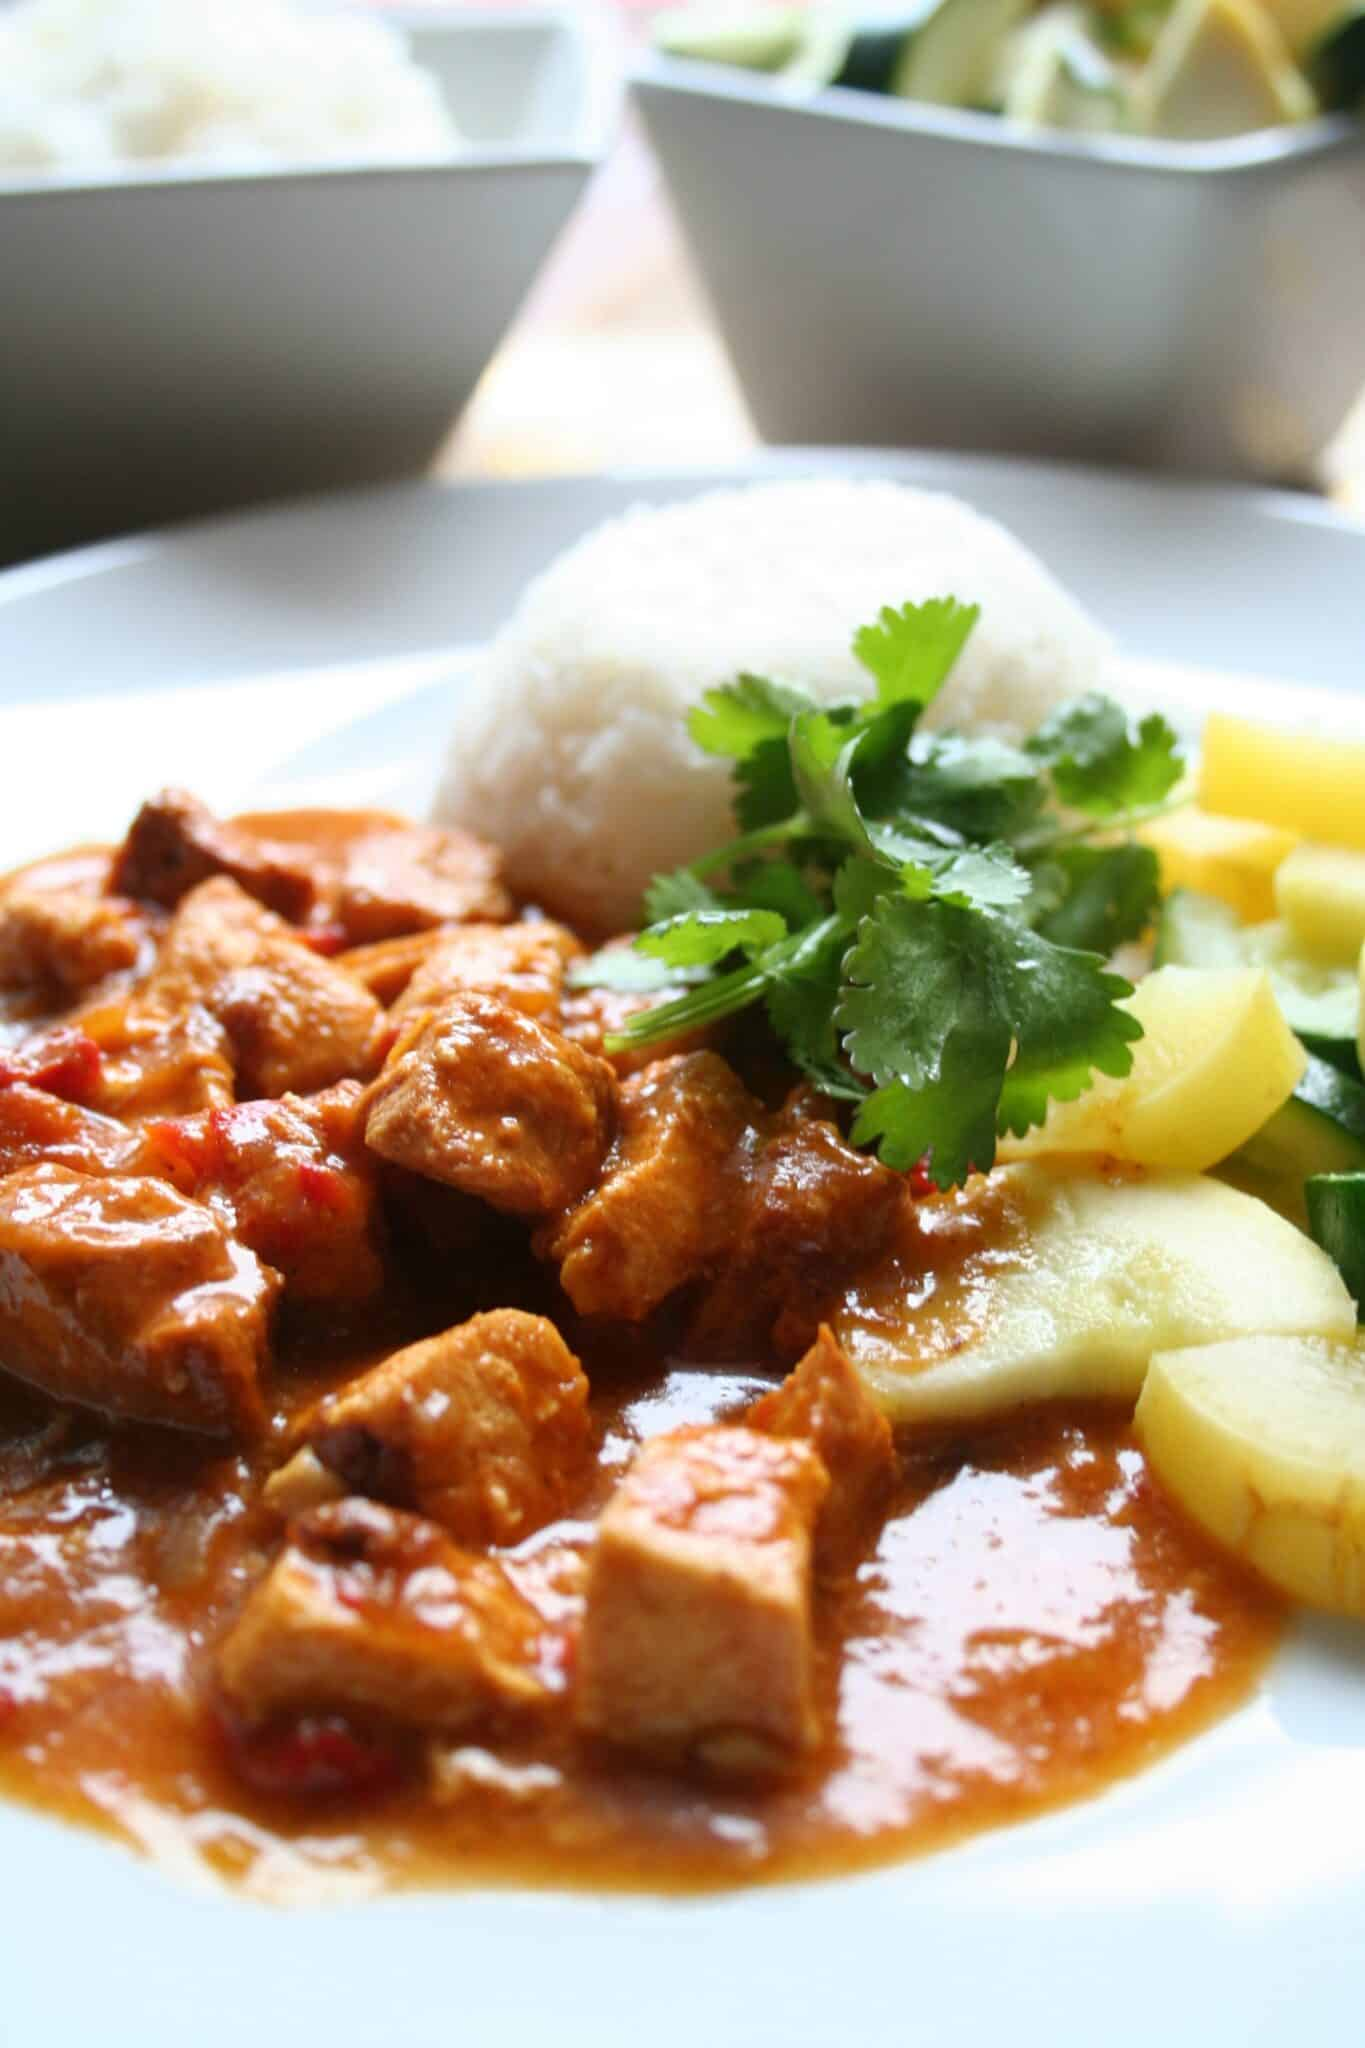 Chicken curry on plate with rice and zucchini